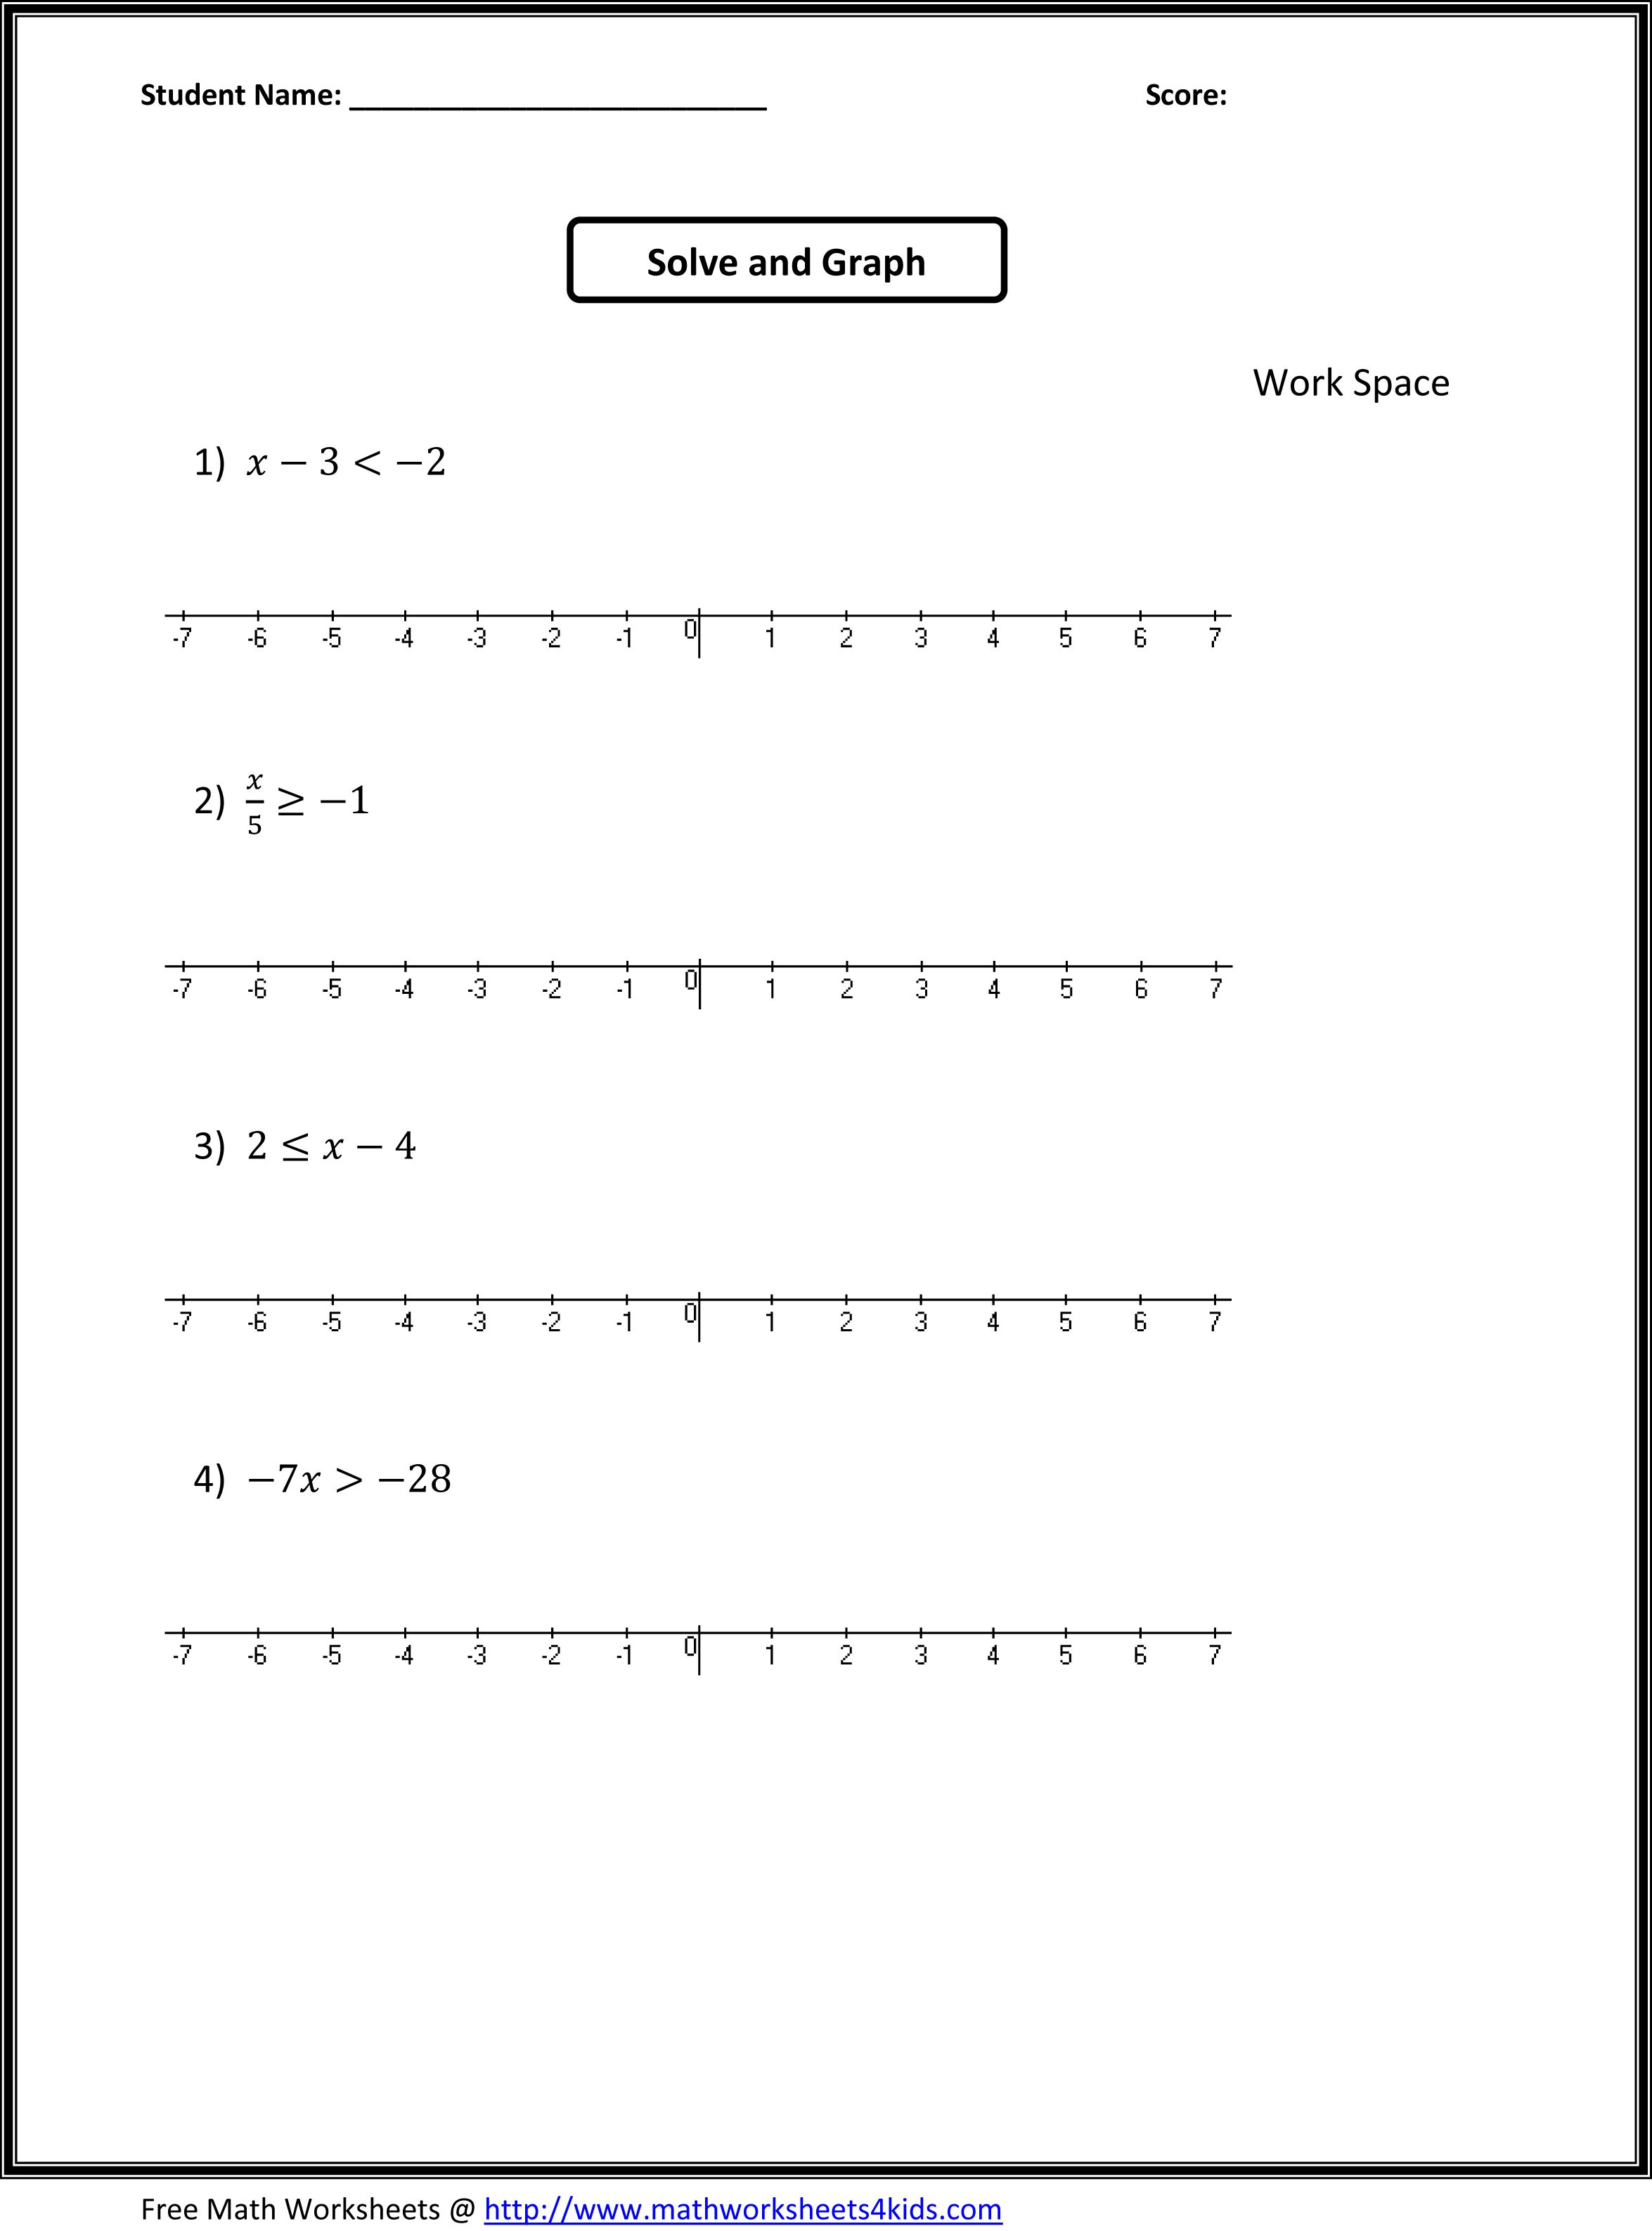 Worksheets 2 Step Inequalities Worksheet solving word problems in algebra is easy if you know the key steps seventh grade math worksheets contain ratio integers fractions decimals two step equations inequalities area circumferenc